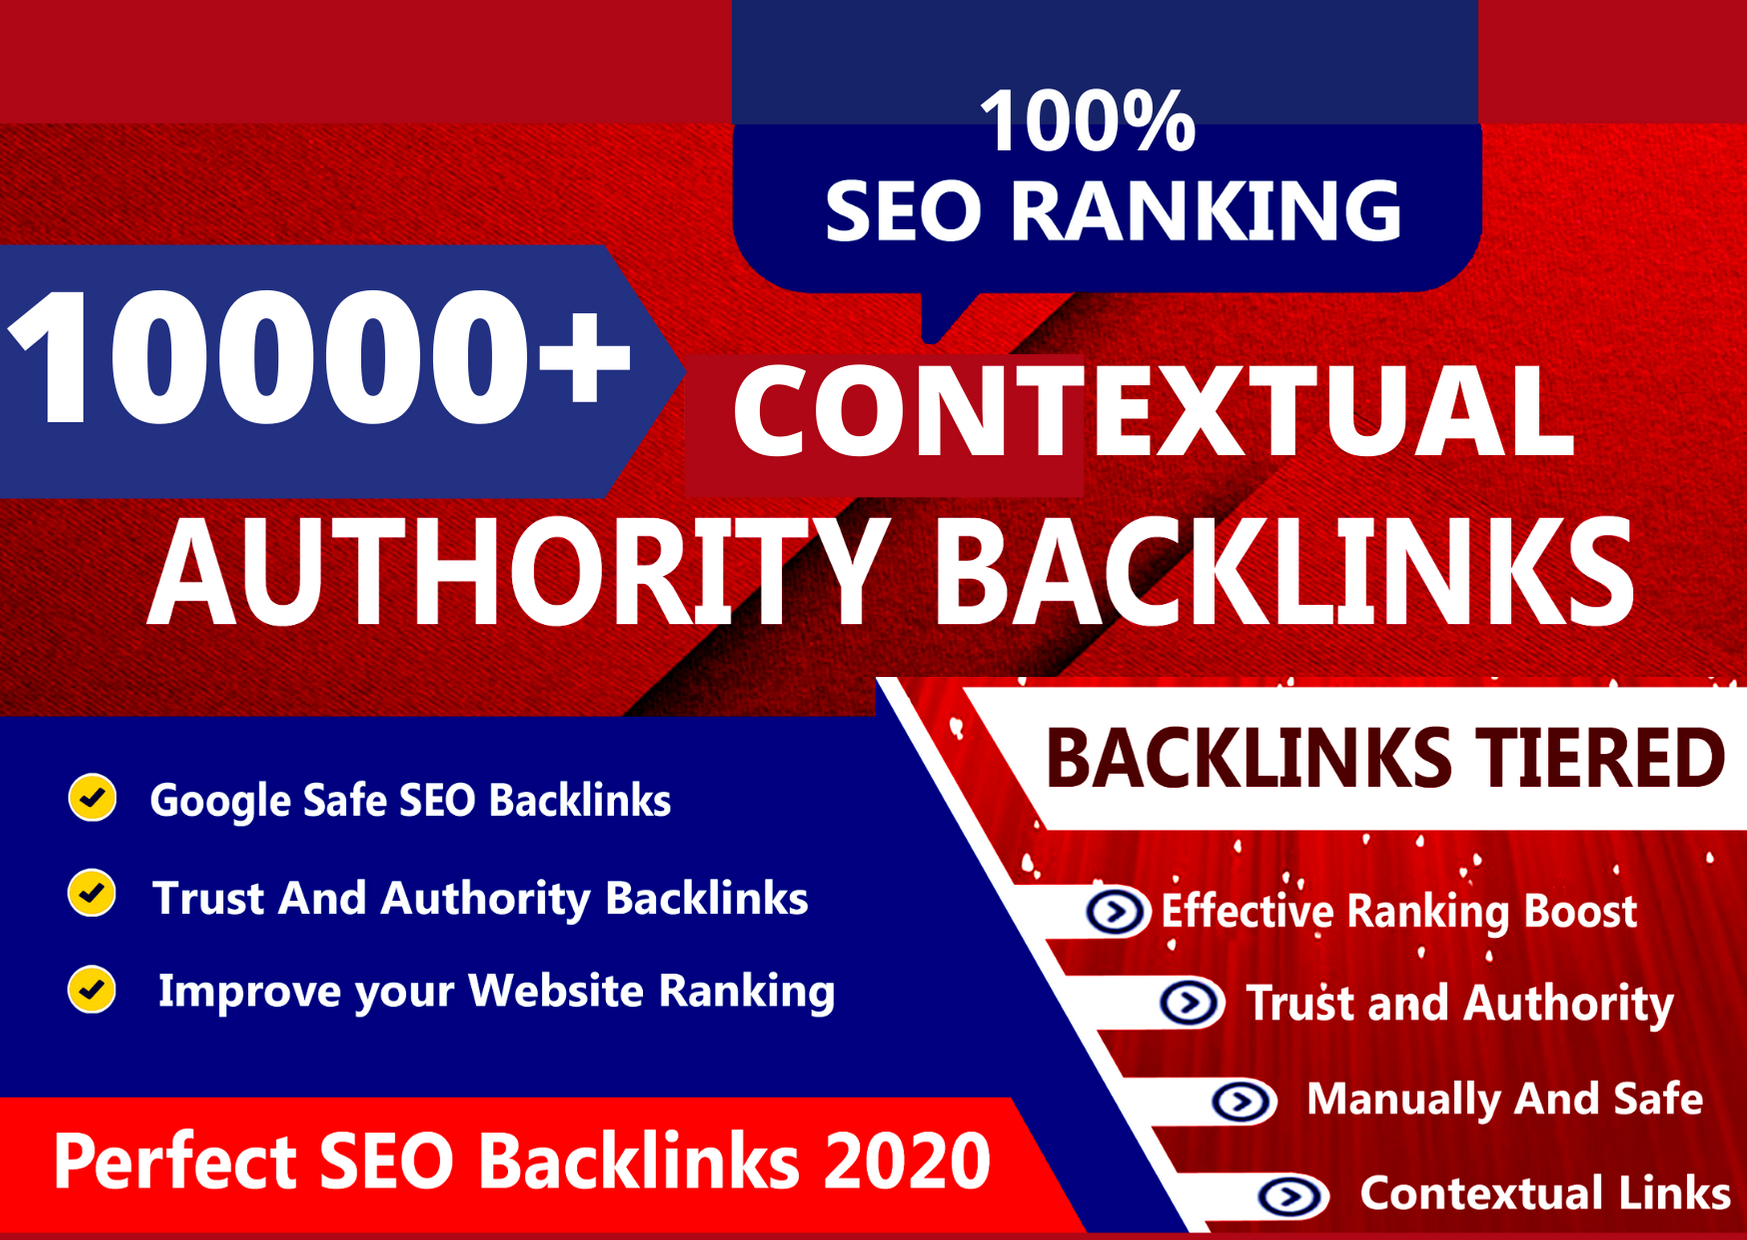 10,000 + CONTEXTUAL BACKLINKS for off page SEO WITH TIER 1 & TIER 2